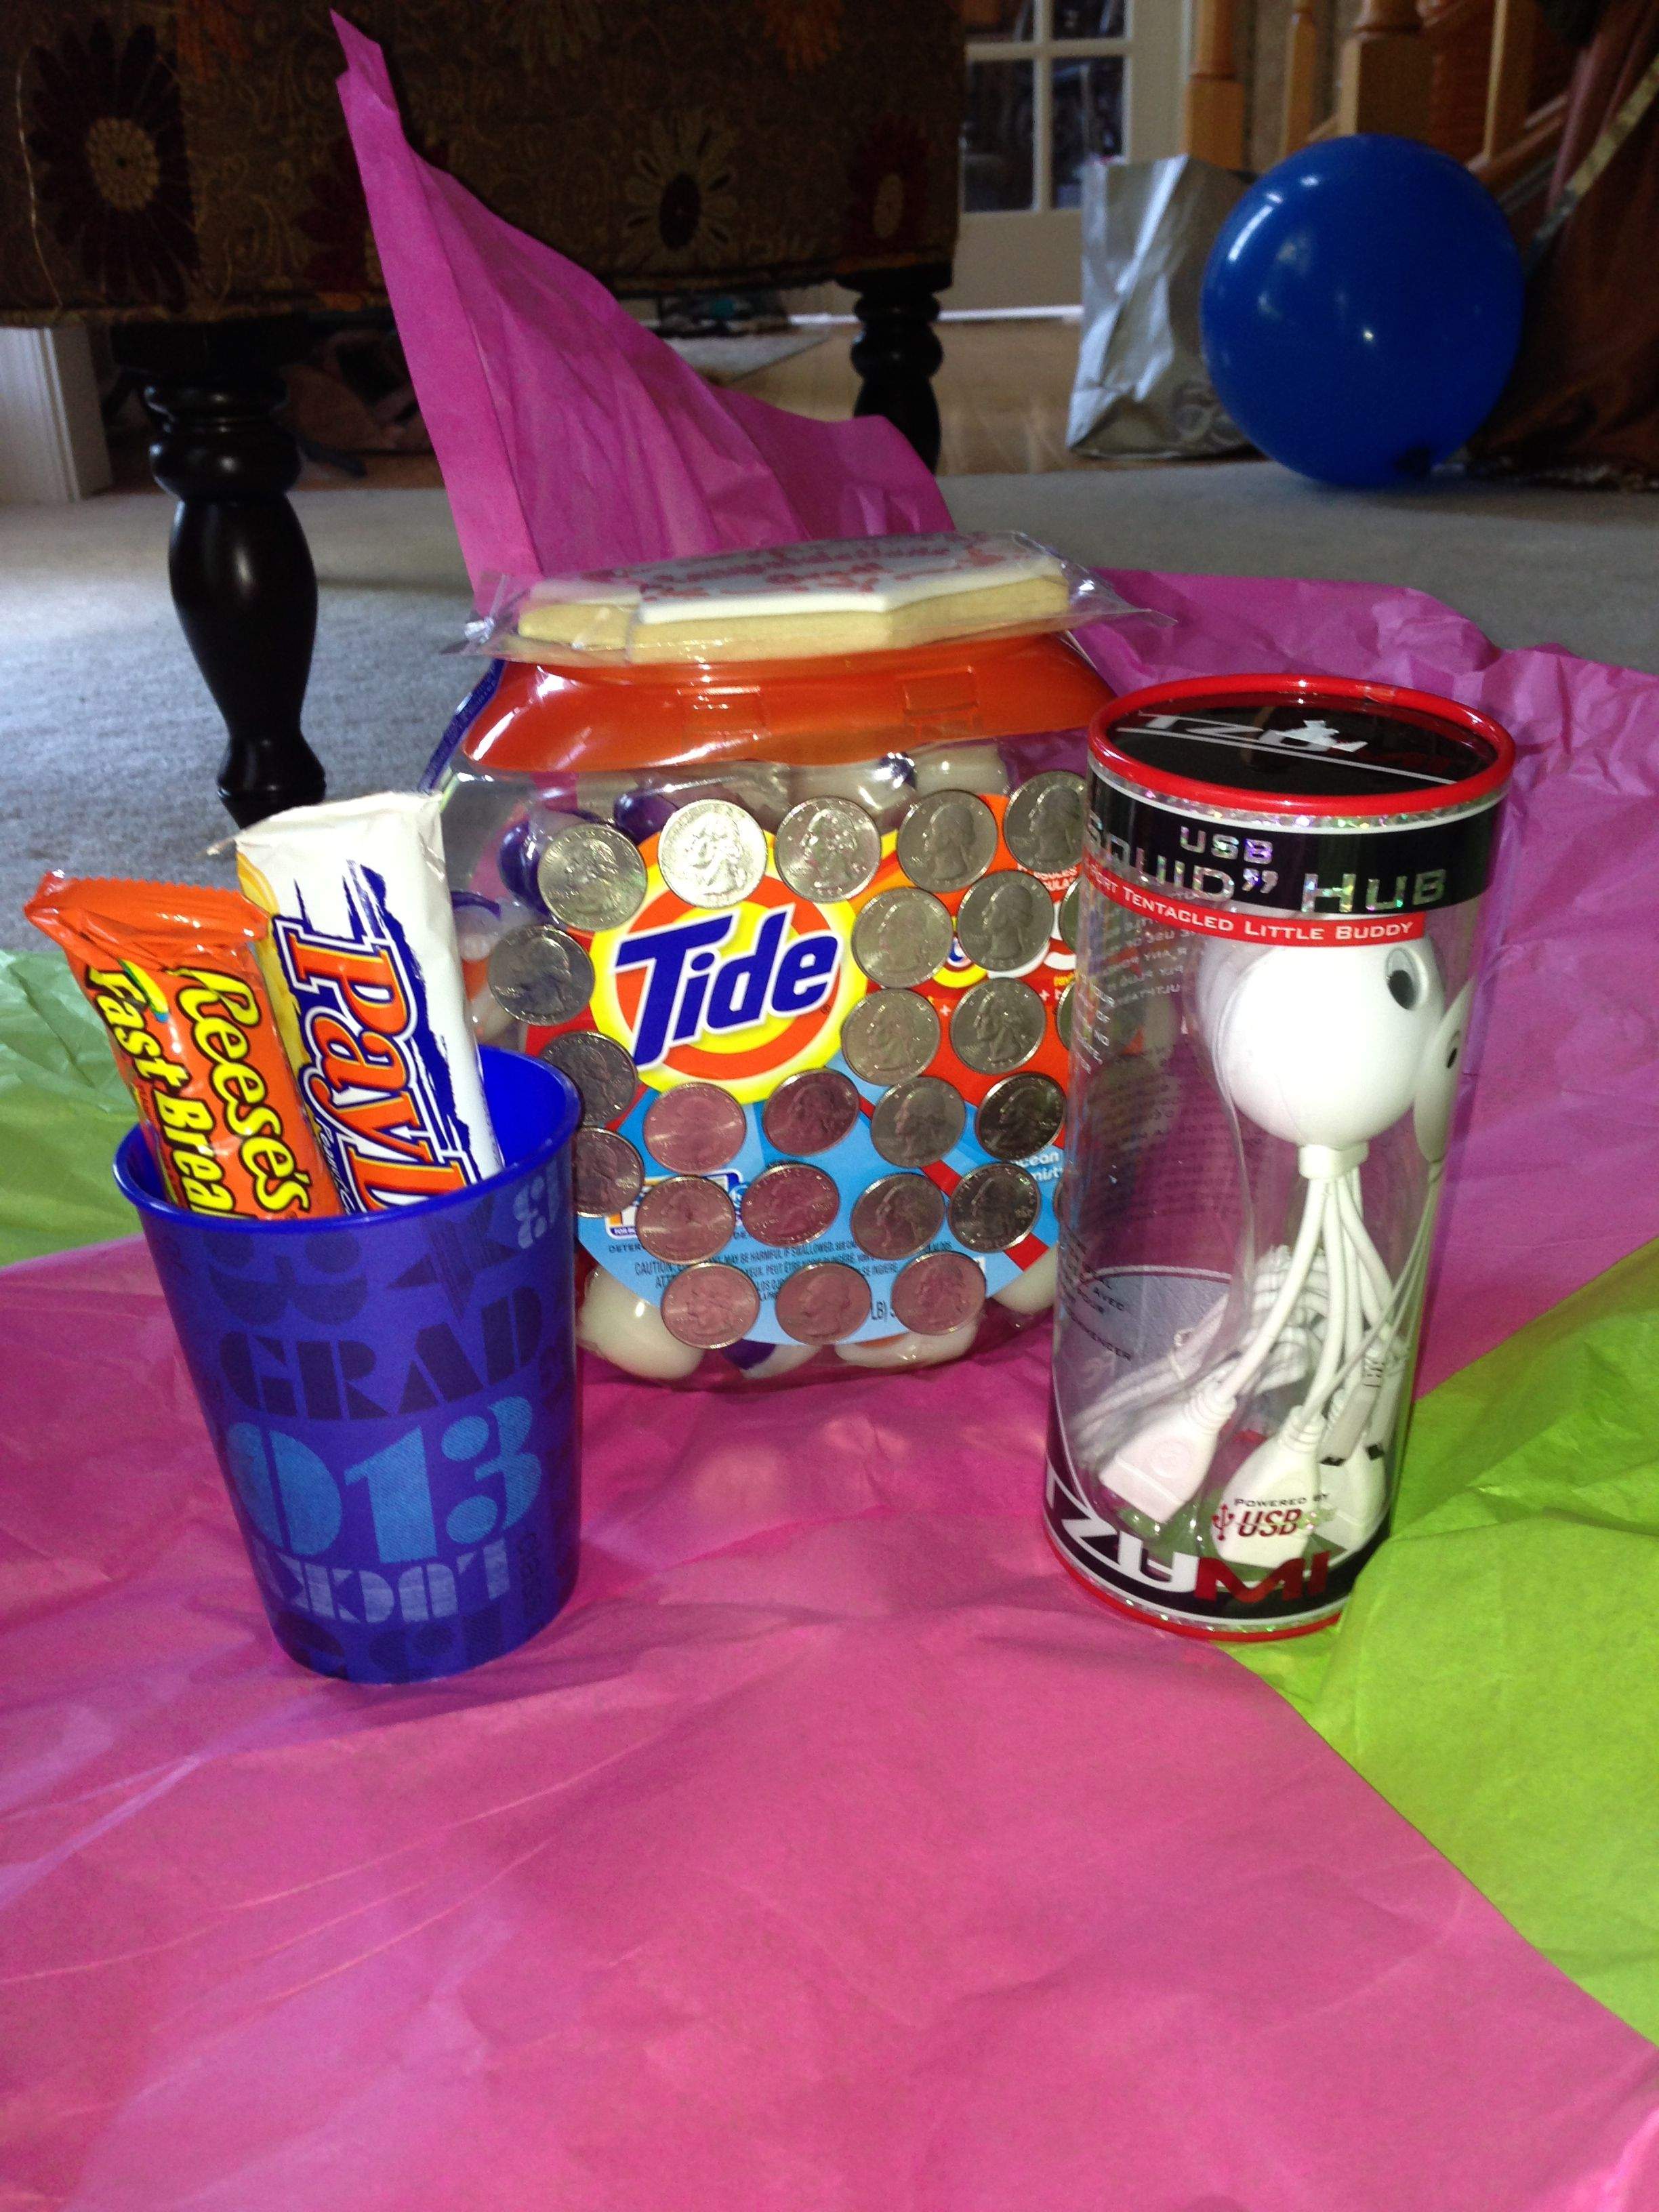 Graduation Gift To My Sister And Brother Quarters Stuck Onto Tide Pods For Laundry In College Grad Gifts Graduation Gifts Gifts